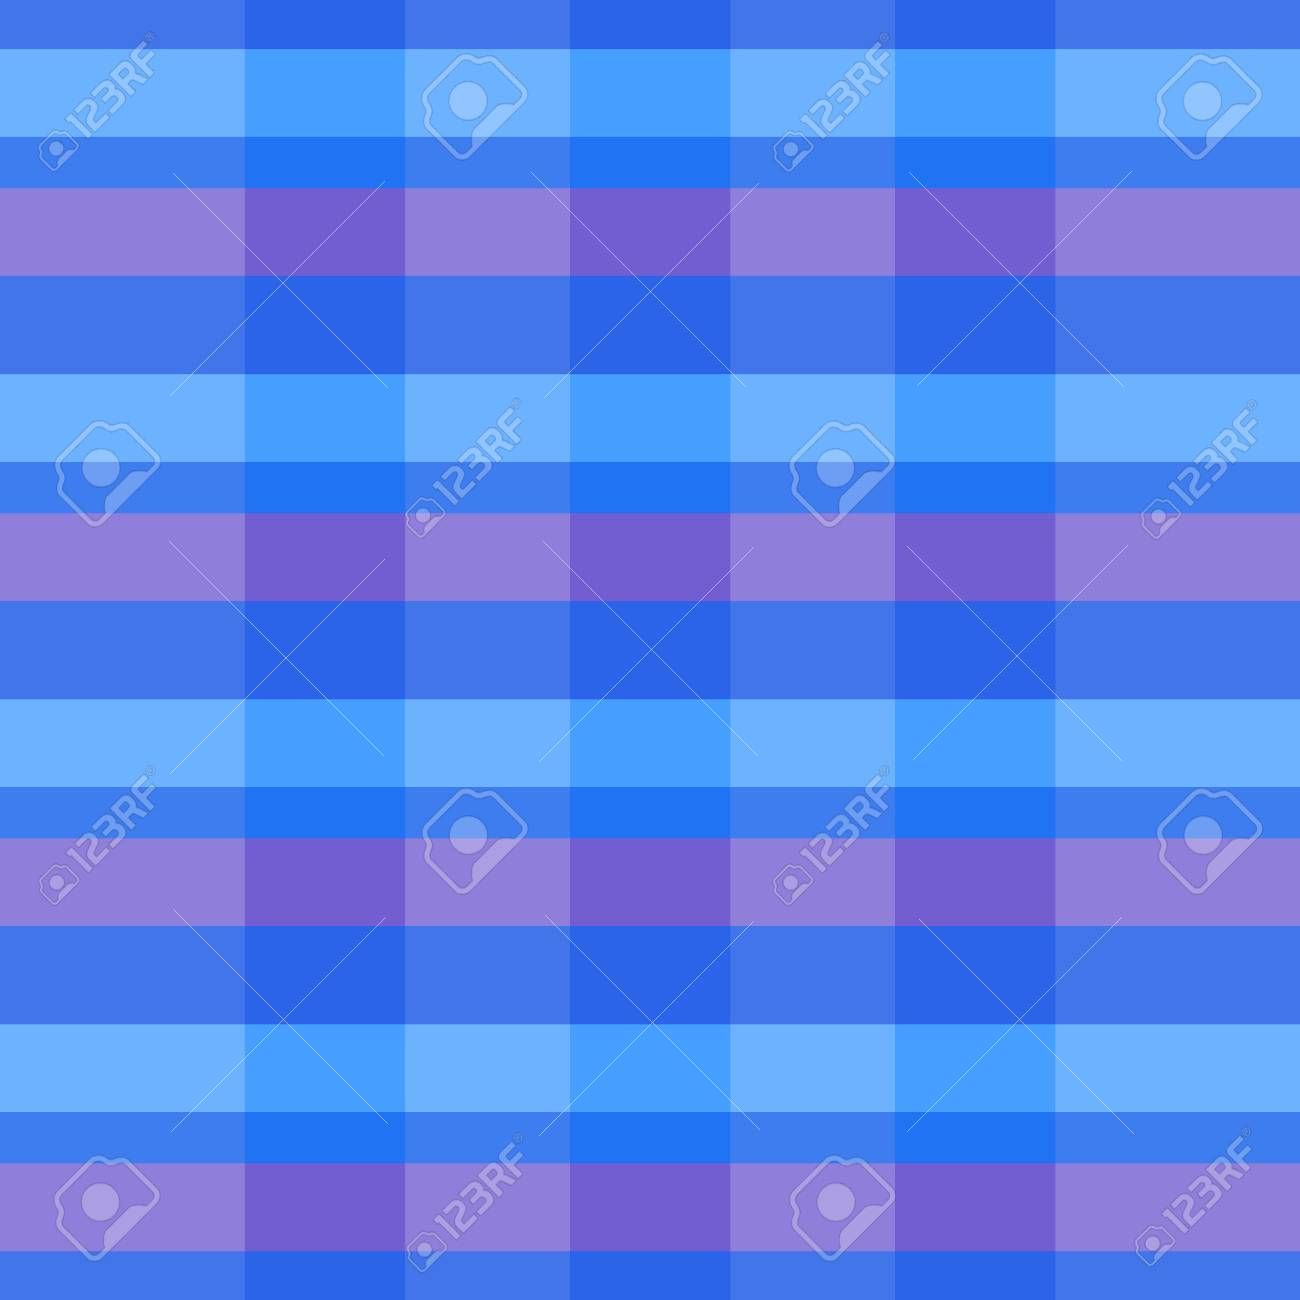 photo about Lite Brite Free Printable Patterns named Seamless tartan plaid practice. Checkered material texture print..